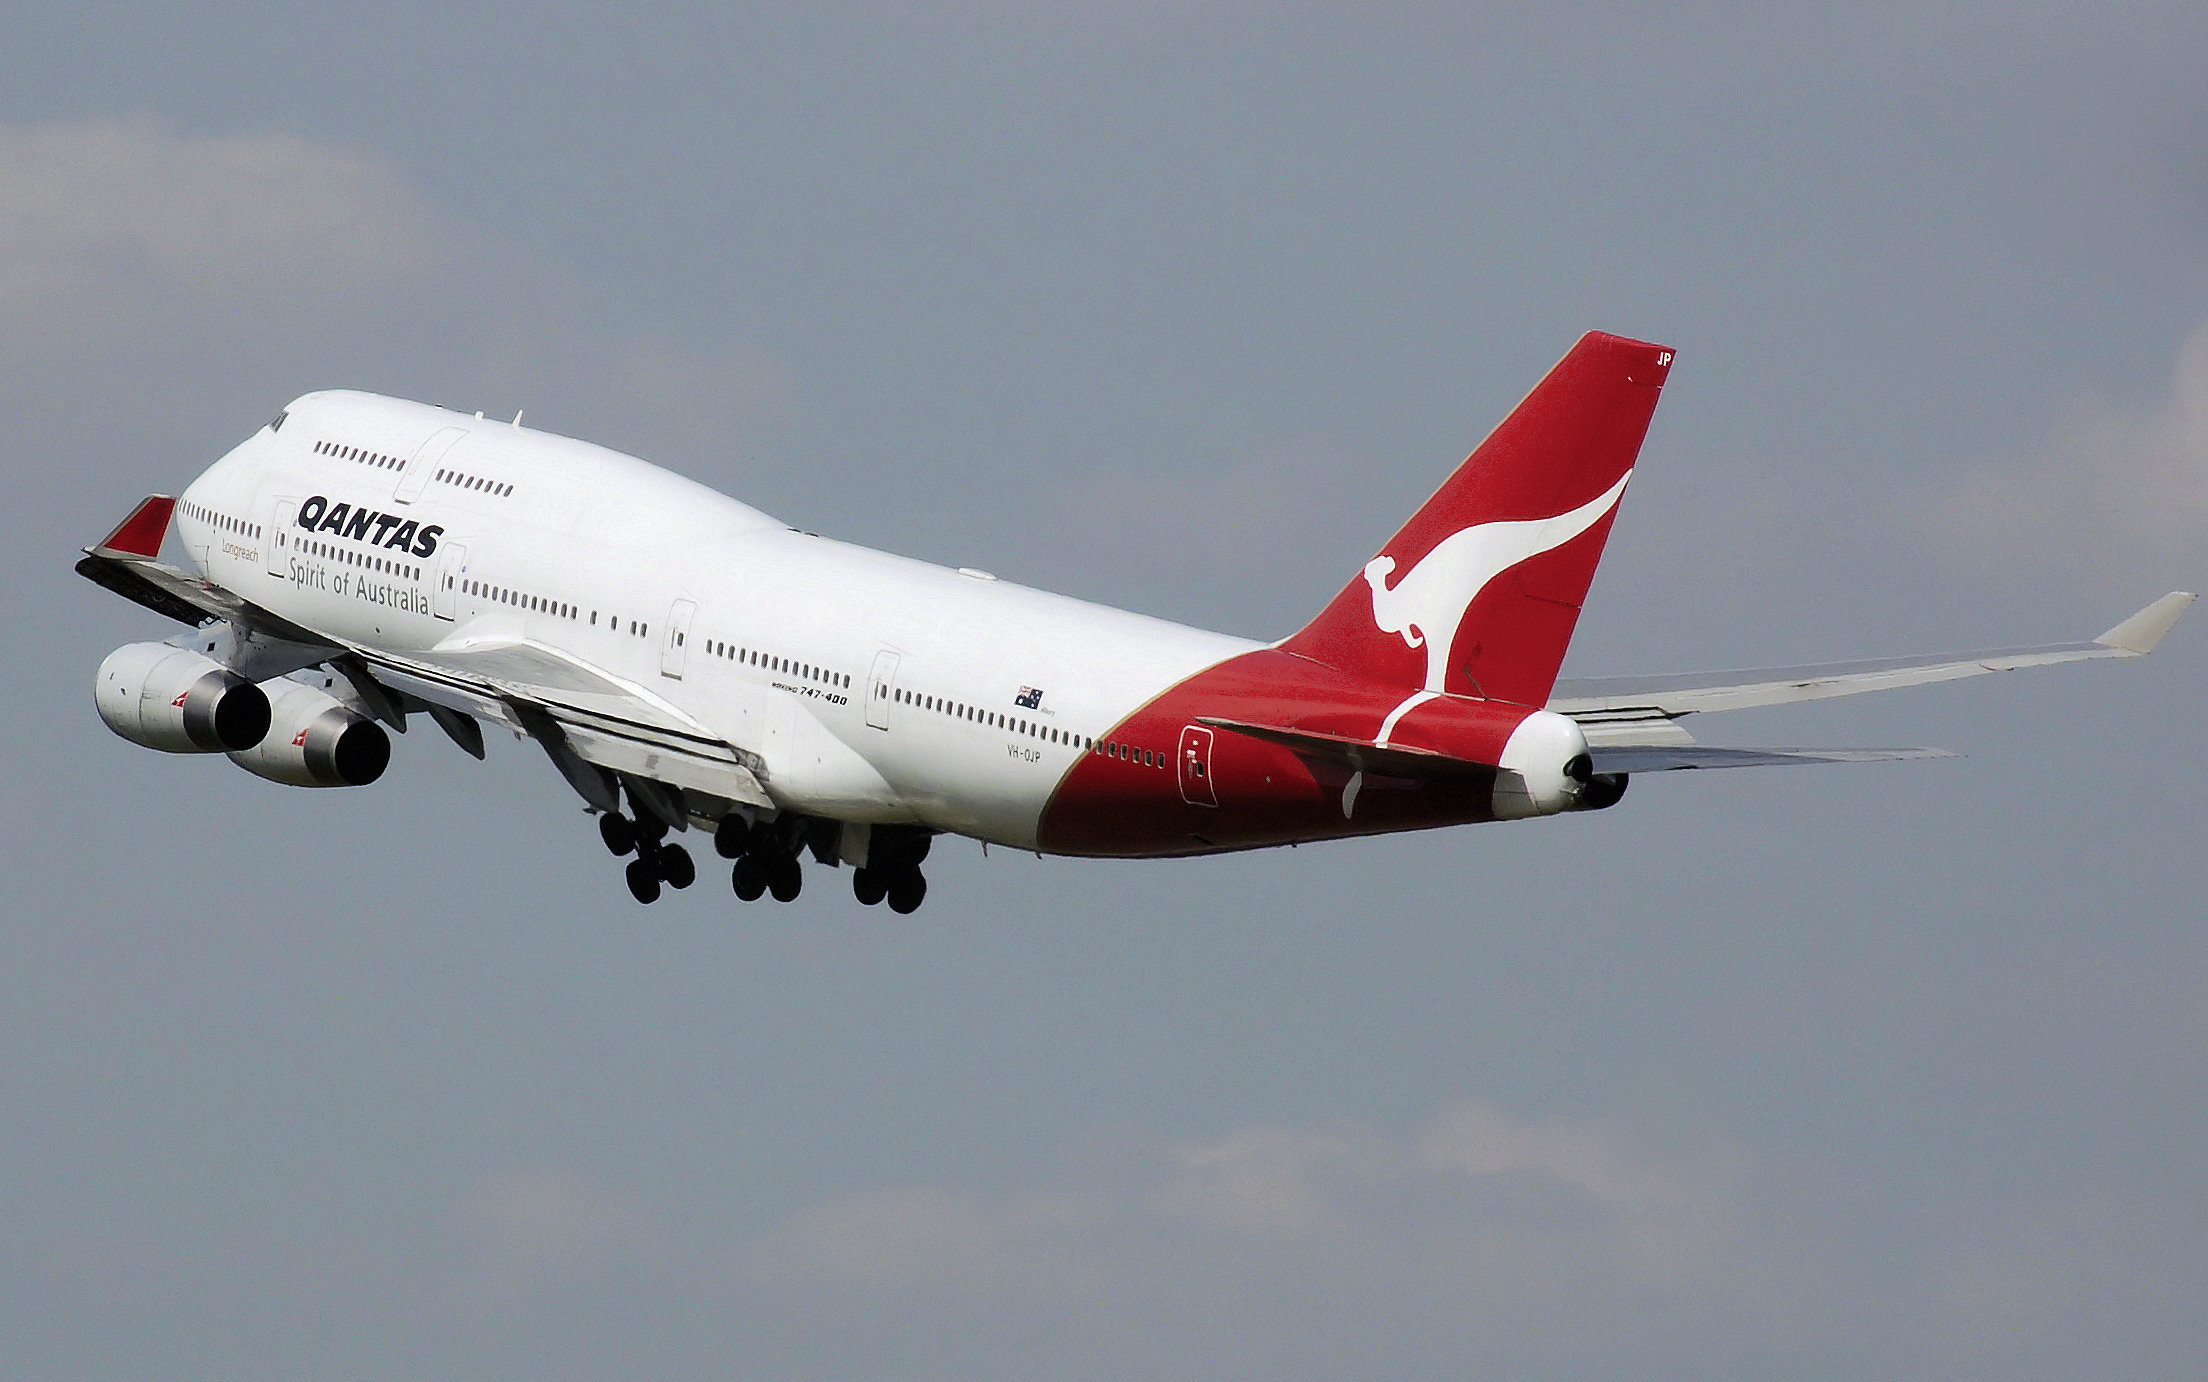 qantas international We would like to show you a description here but the site won't allow us.